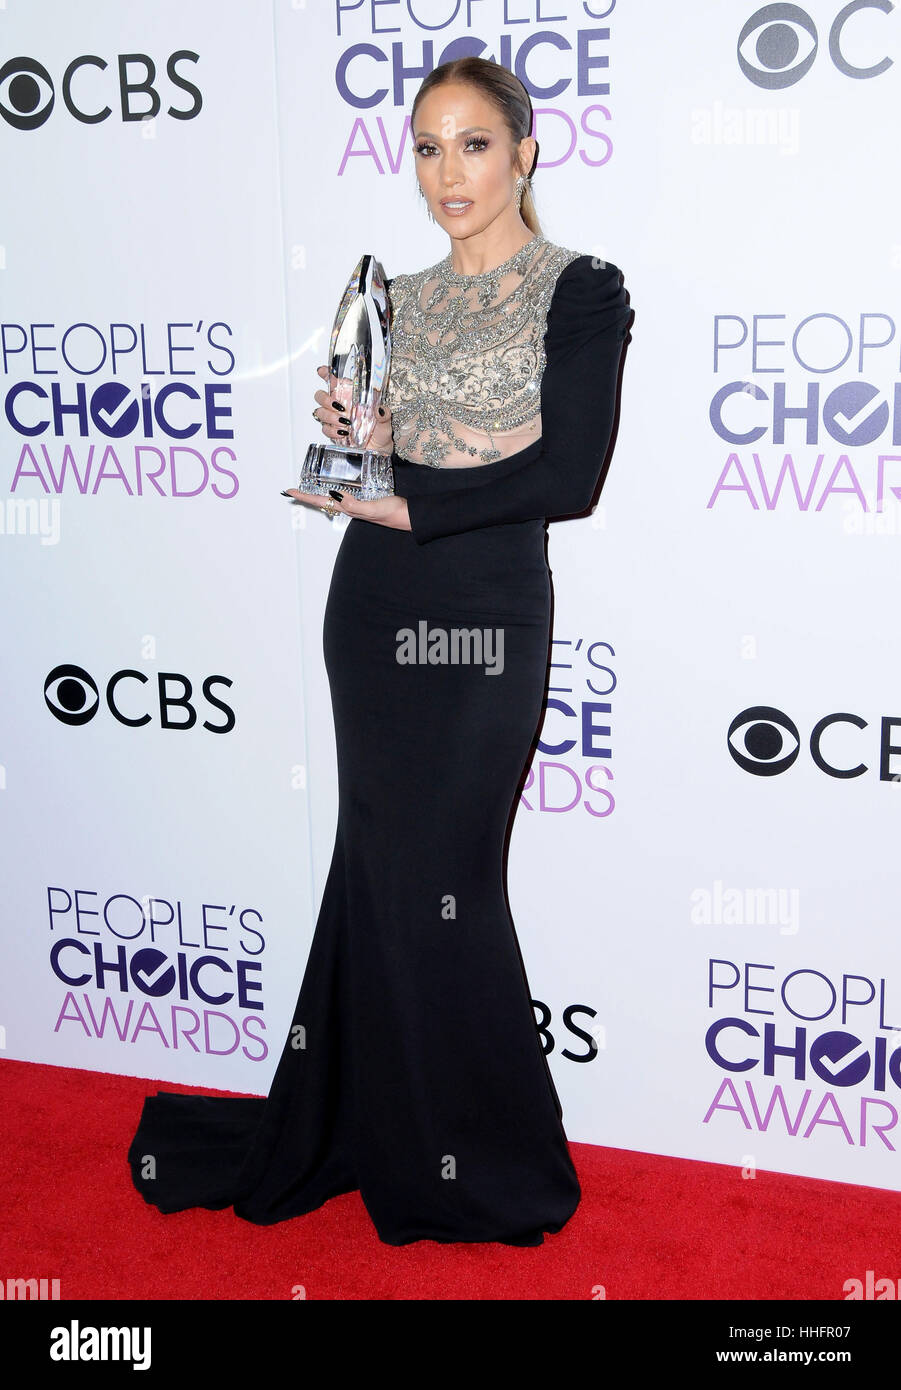 Los Angeles, CA, EE.UU. 18 ene, 2017. Jennifer López. 2017 People's Choice Awards 2017 Sala de prensa celebrada Foto de stock